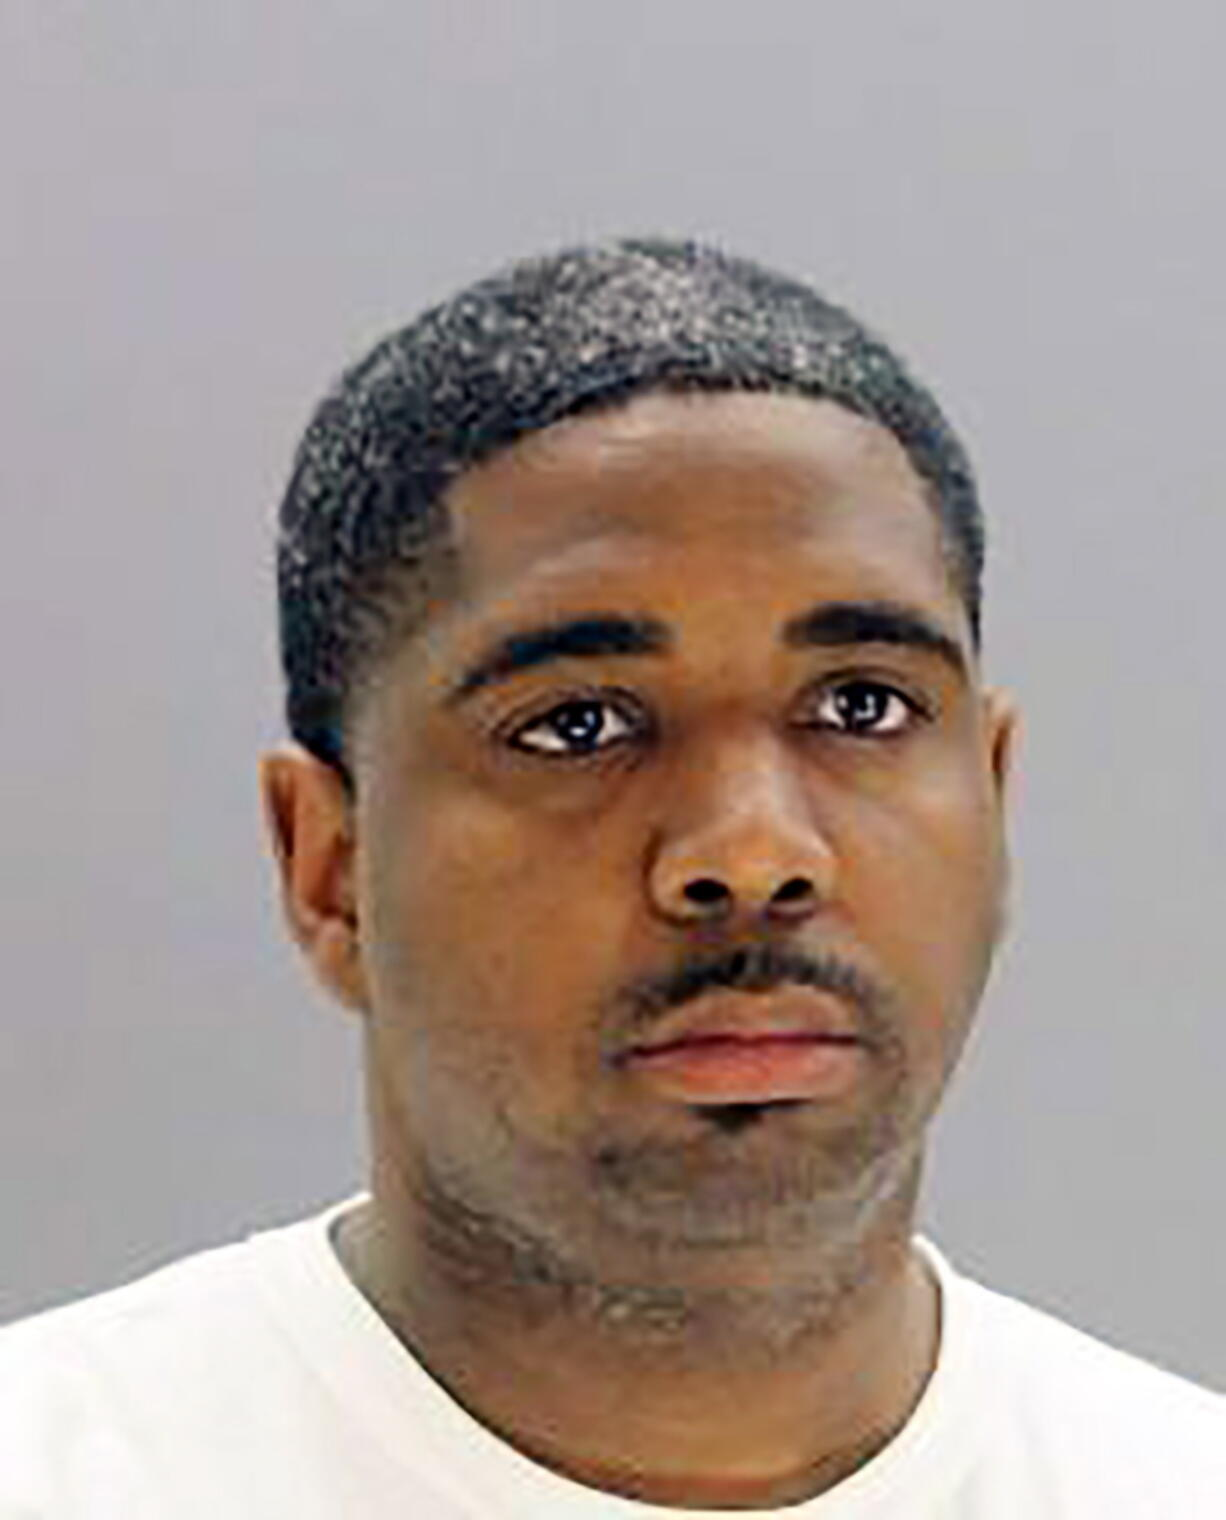 This undated photo provided by the Dallas County Sheriff's Office shows Bryan Riser. A judge on Wednesday, April 7, 2021, ordered the release of Riser, a former Dallas police officer who was arrested on capital murder charges for allegedly ordering two killings in 2017 after prosecutors agreed that they don't have enough evidence to move forward with the case.